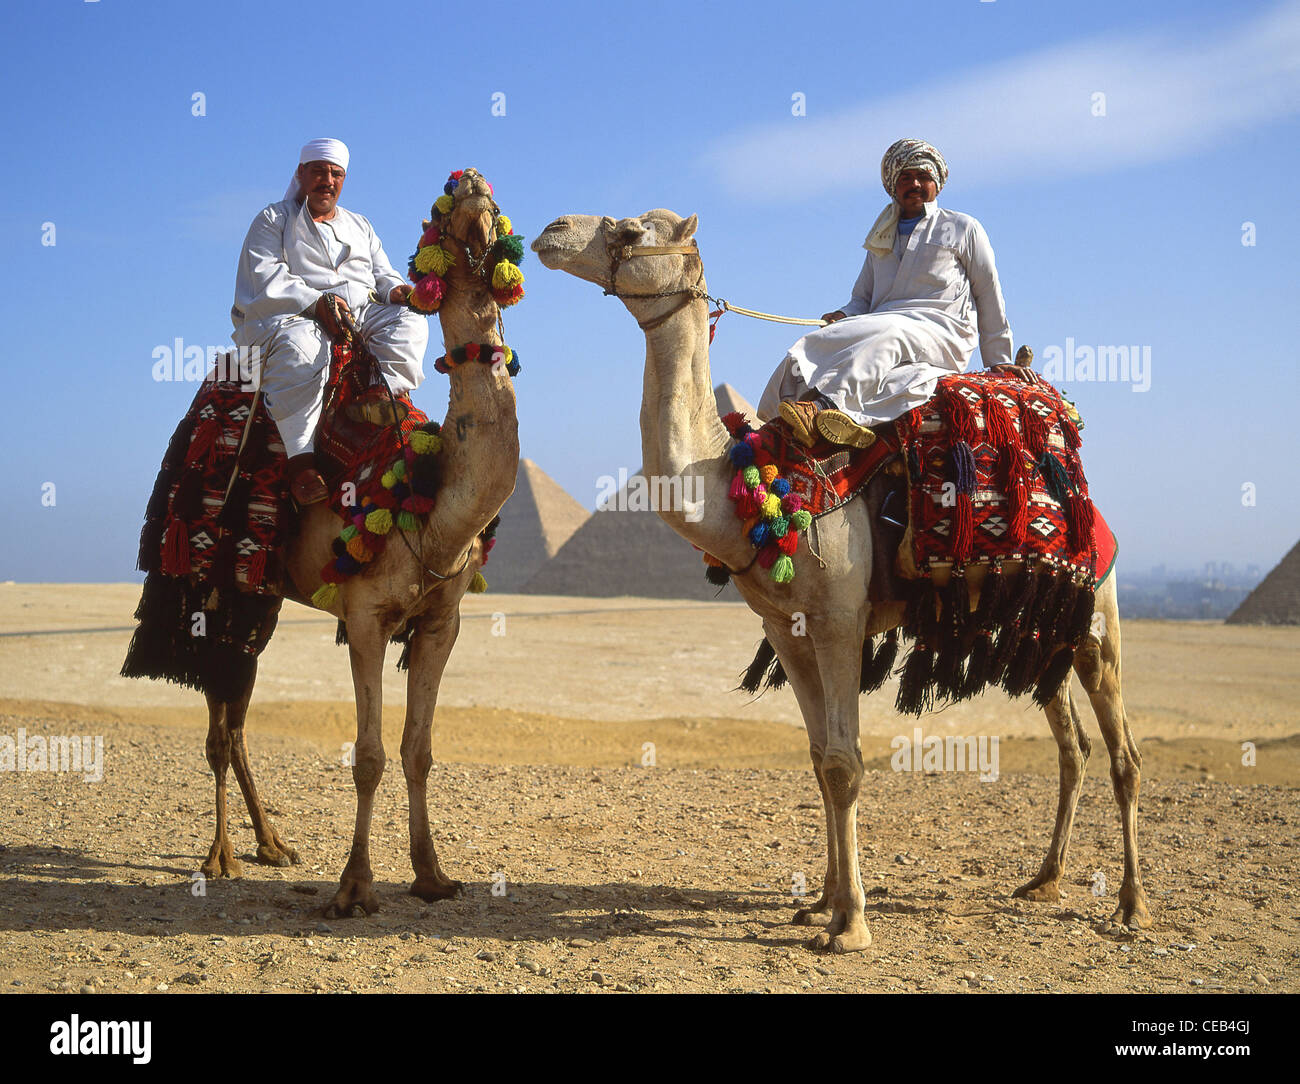 Camel drivers with camels, The Great Pyramids of Giza, Giza, Giza Governate, Republic of Egypt - Stock Image